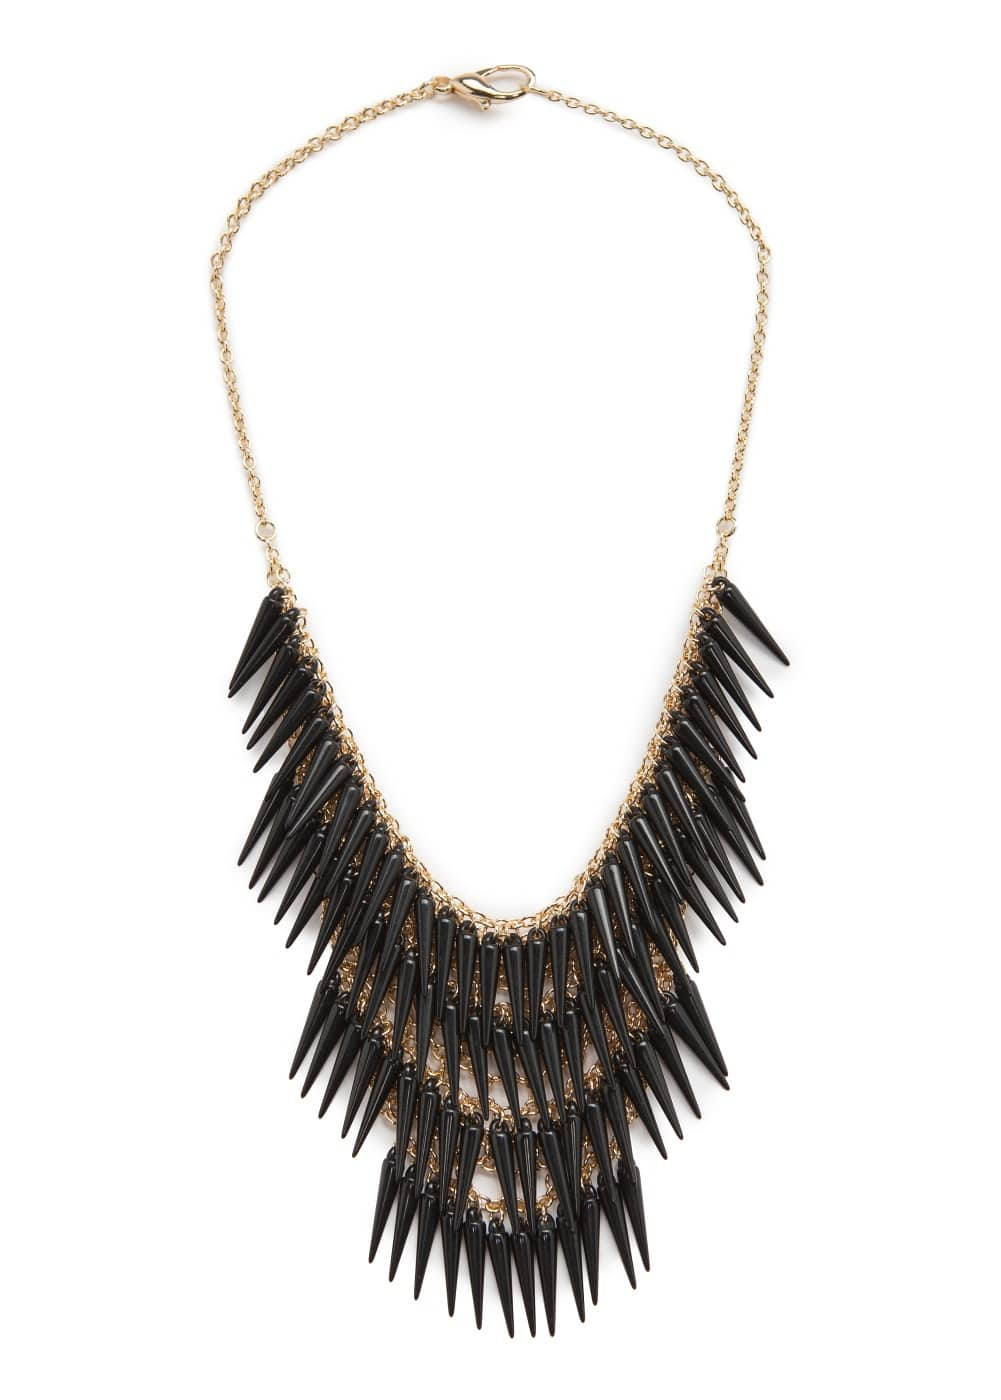 Fang waterfall necklace